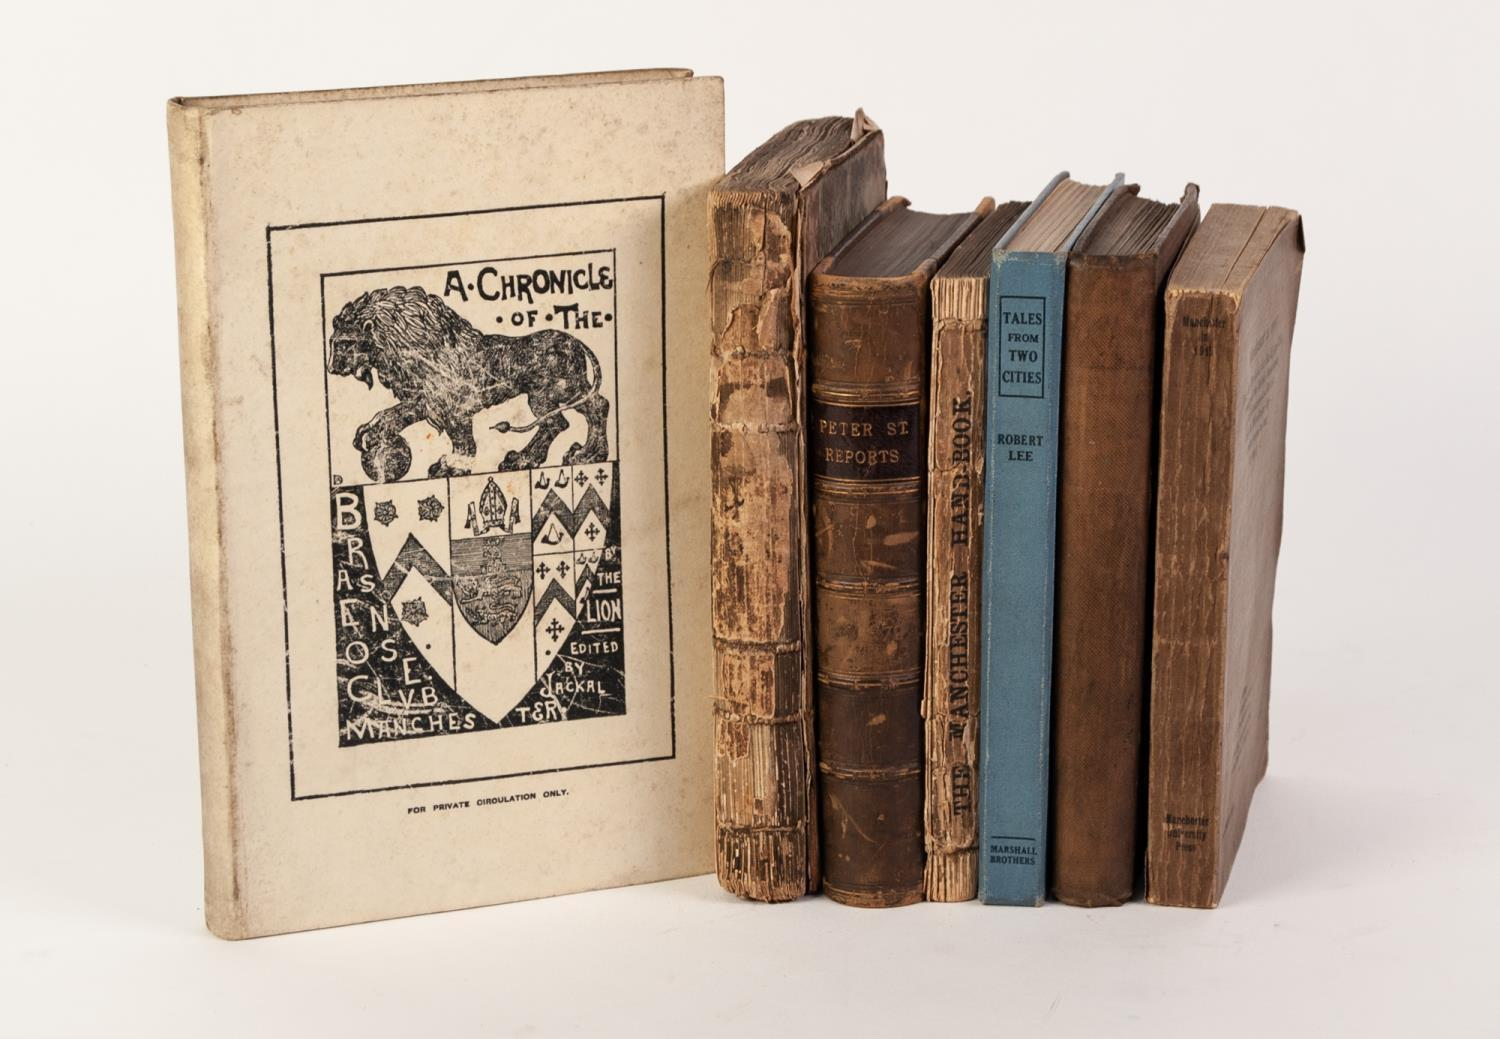 Lot 48 - TOPOGRAPHY, LOCAL HISTORY- A Chronicle of the Brasenose Club Manchester, printed by The Guardian